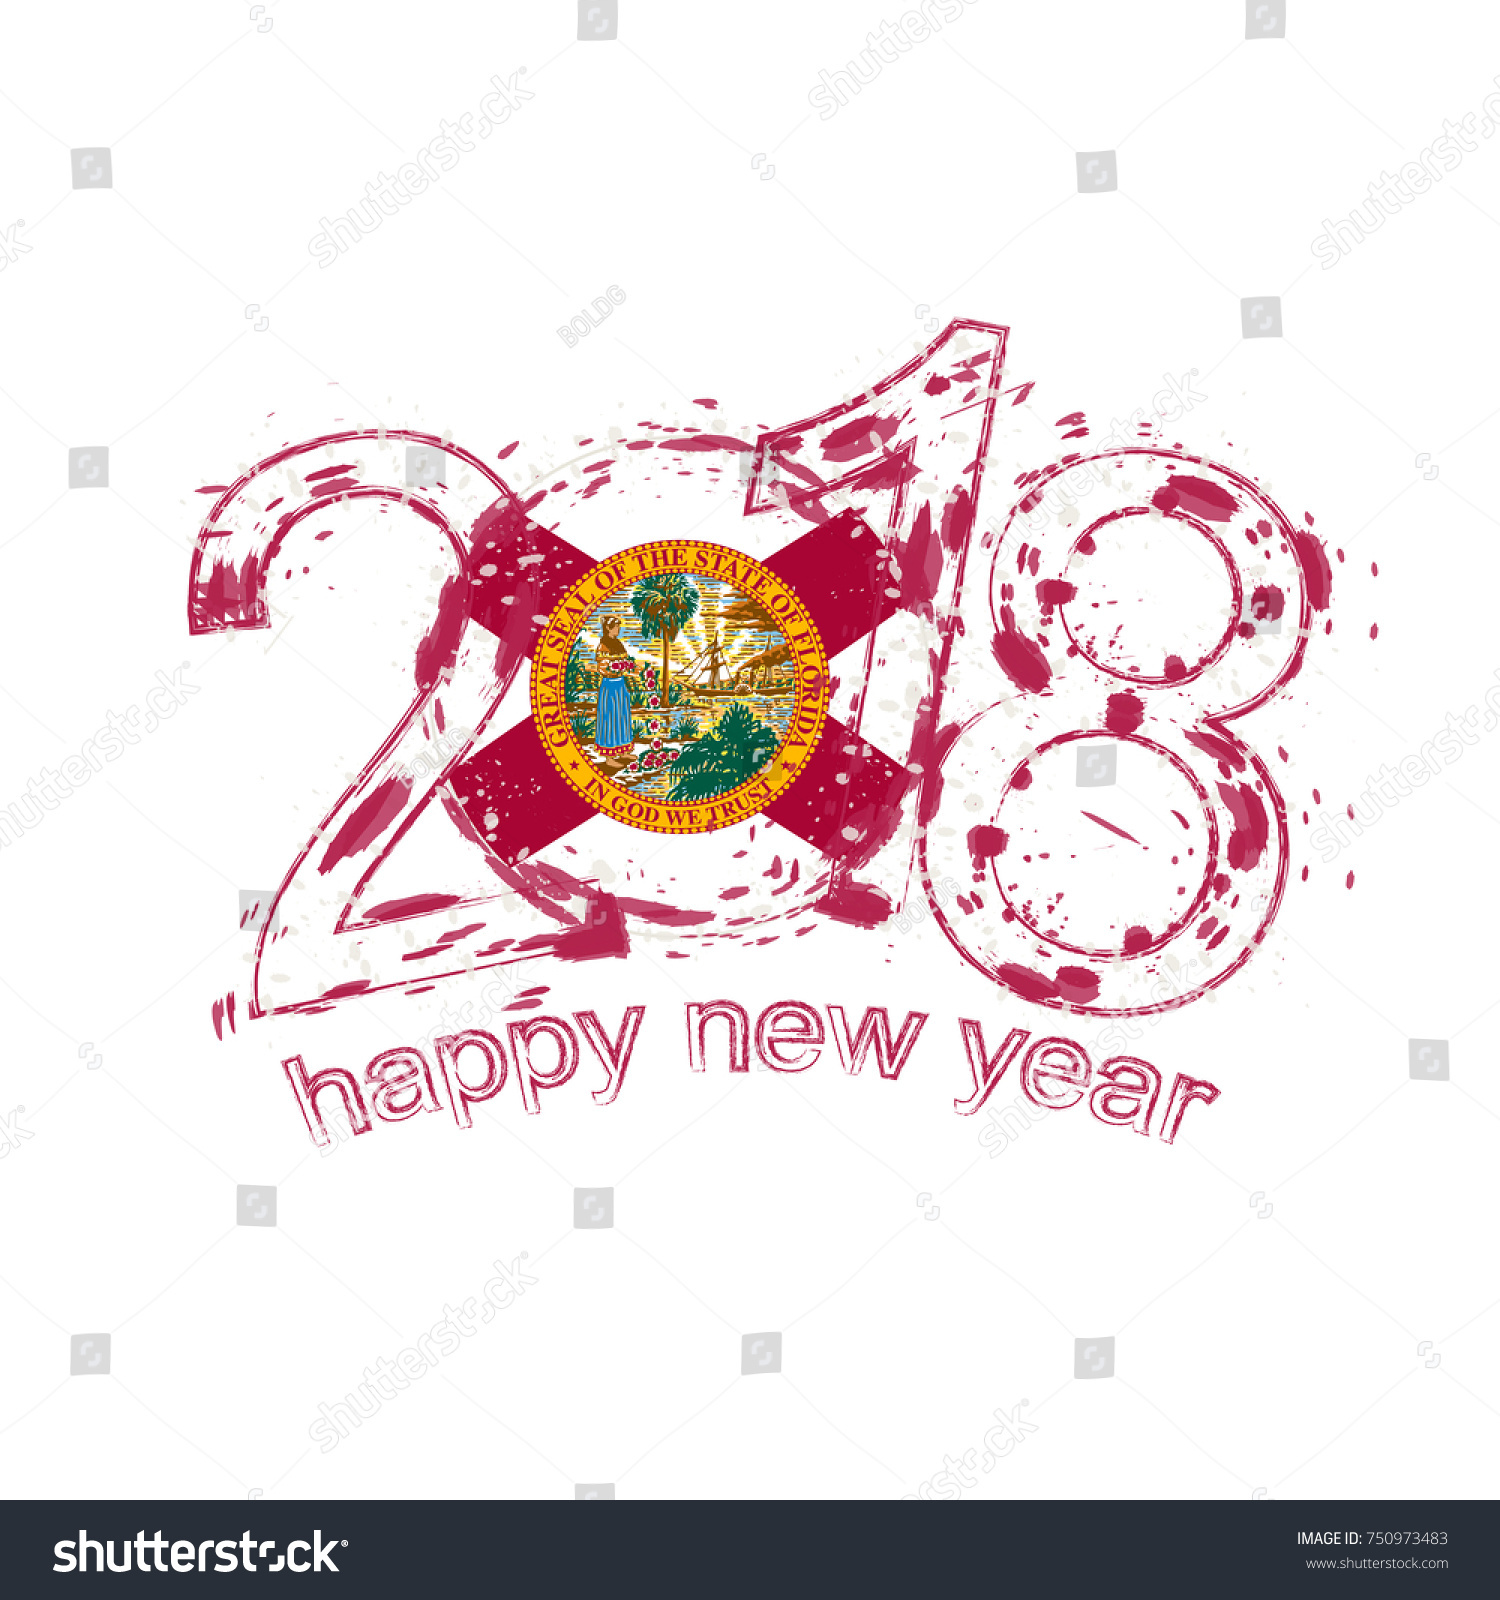 2018 Happy New Year Florida US Stock Vector (Royalty Free) 750973483 ...